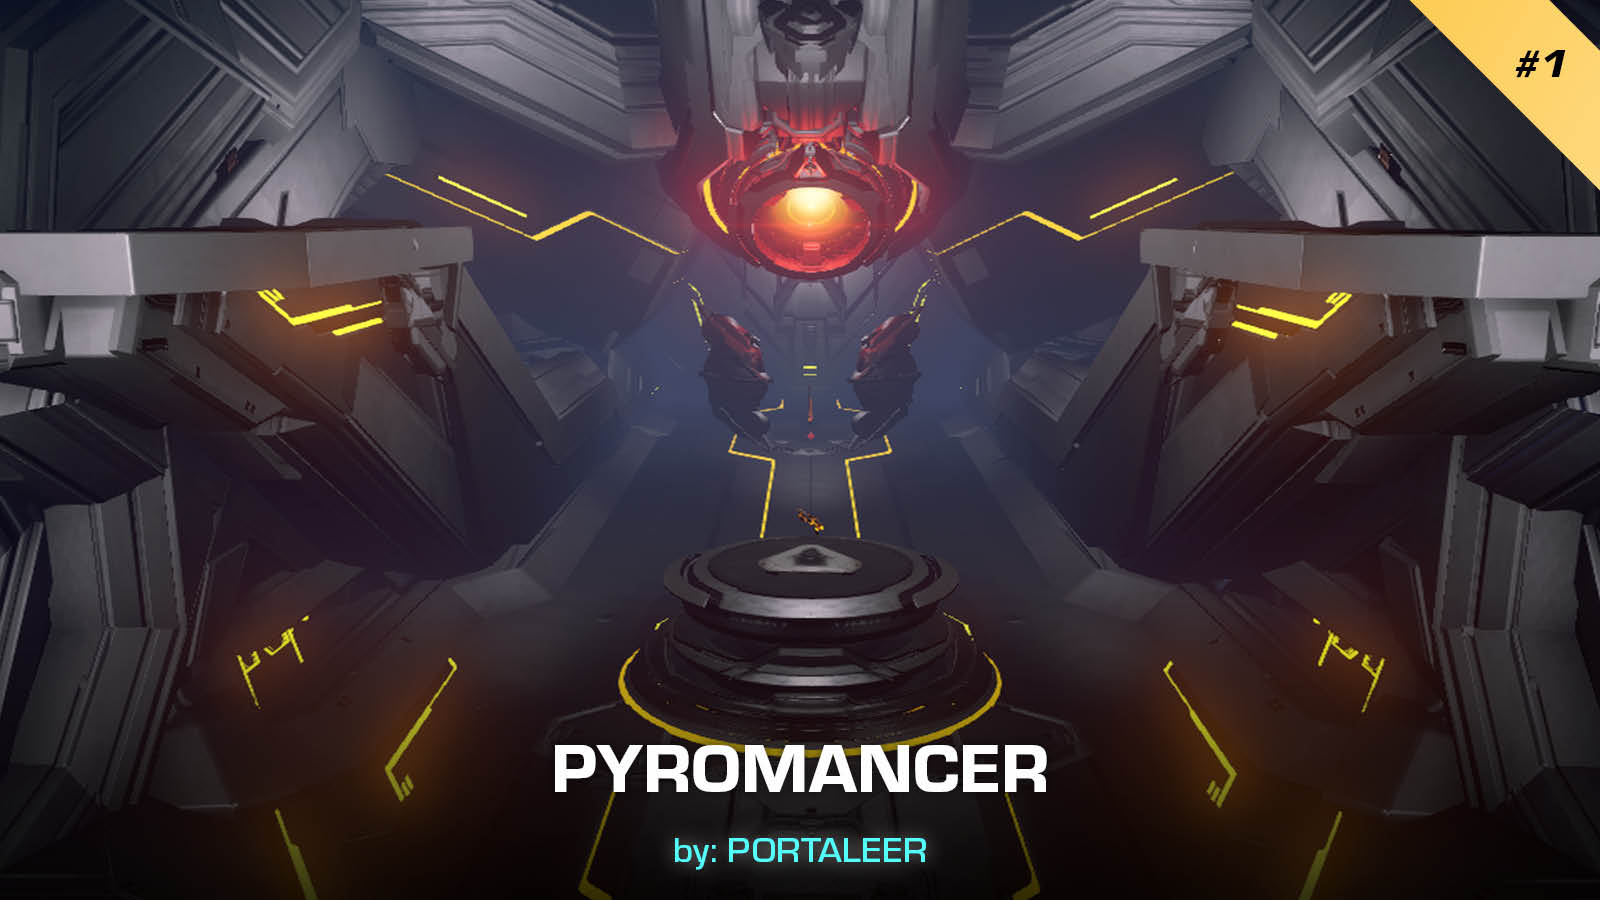 Community Favs Winners May #1 Pyromancer-Portaleer.jpg